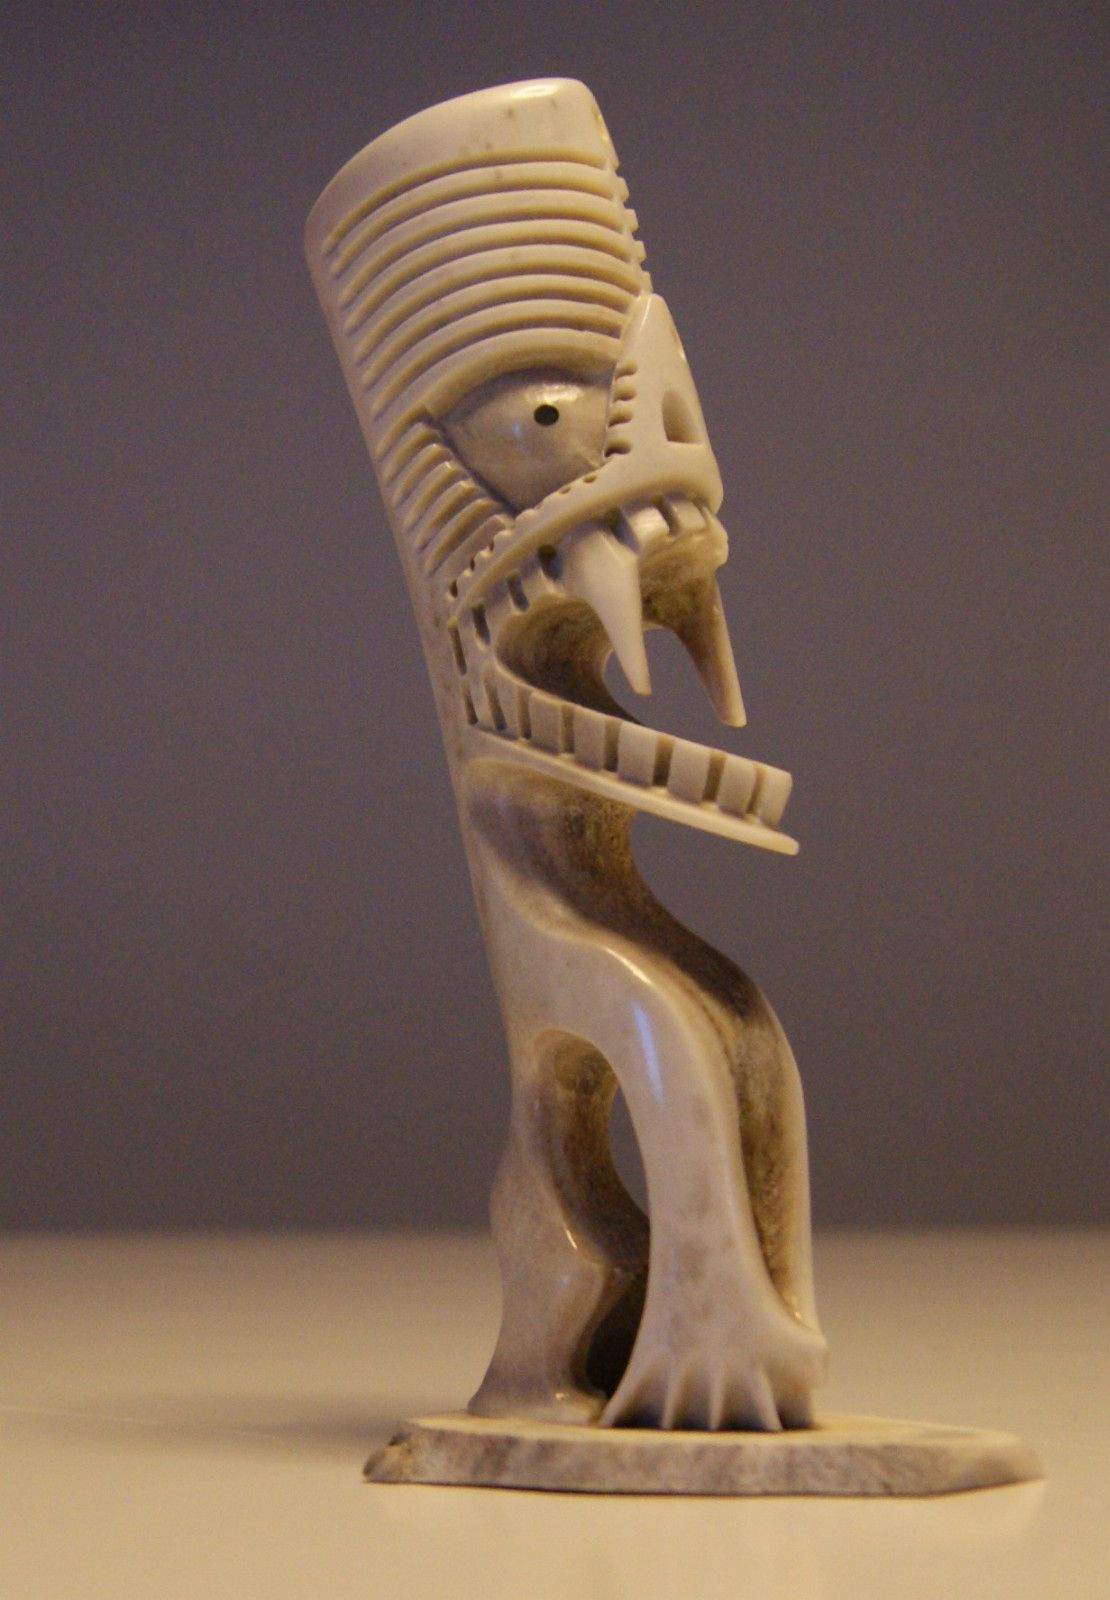 Inuit art greenland this looks similar to maori carving